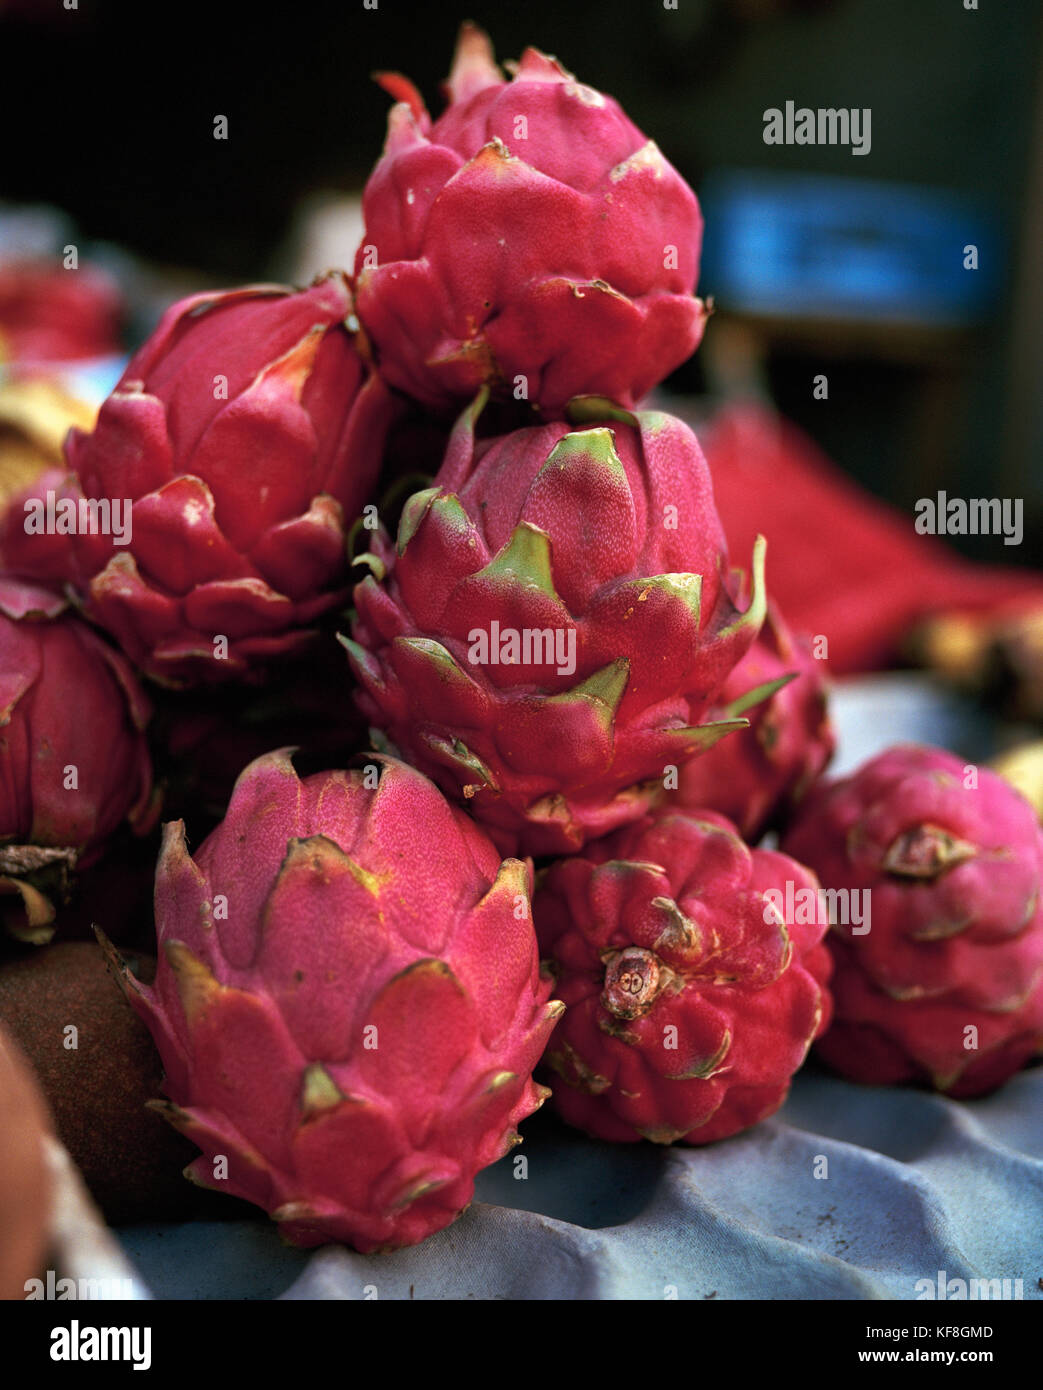 NICARAGUA, Sabaco, a fruit stand on the side of the road, Dragonfruit - Stock Image